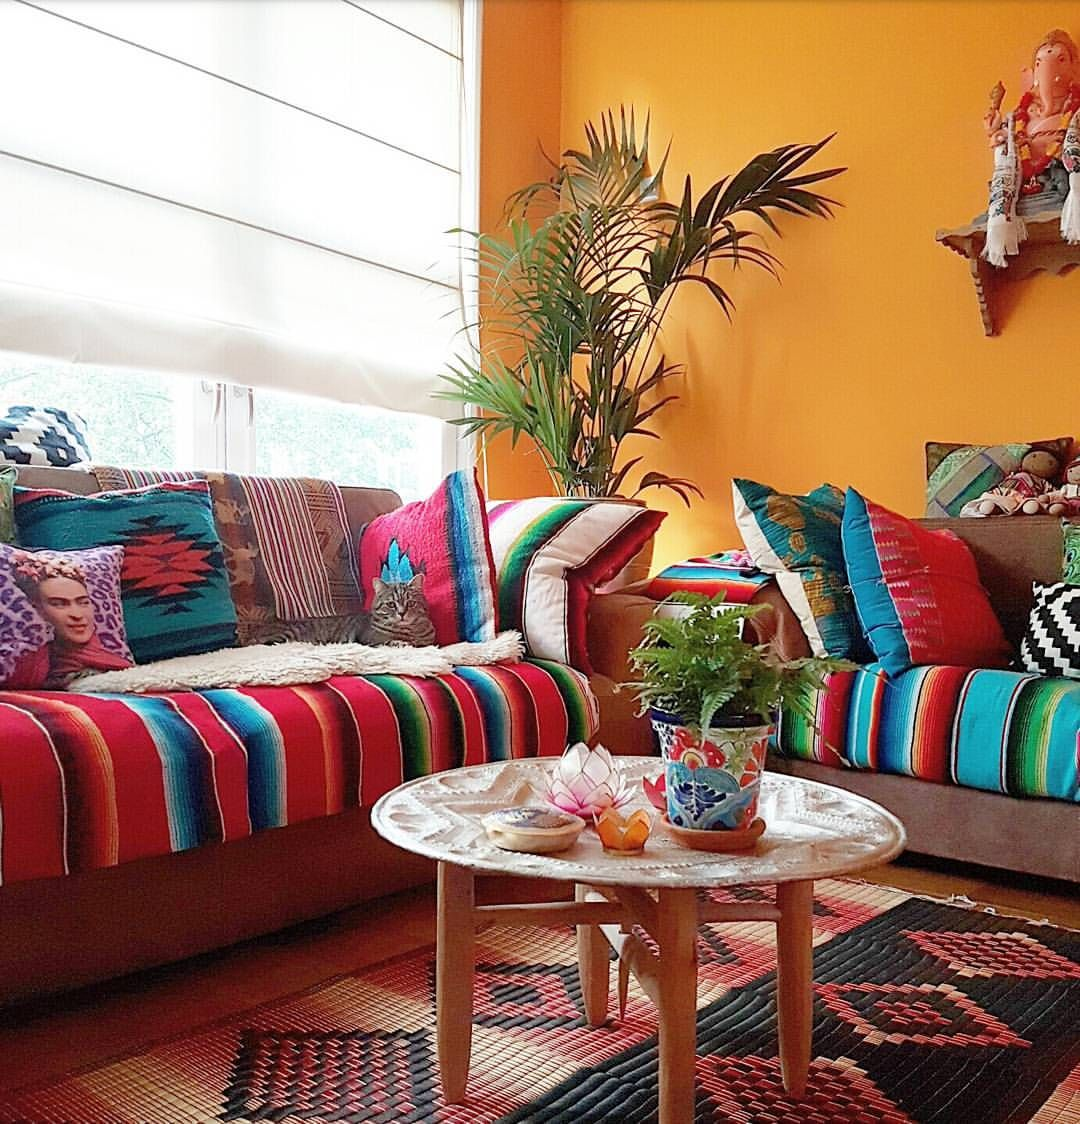 Colorful Living Room Interior Design Ideas: I Love This Room, And What A Colorful Solution If Your